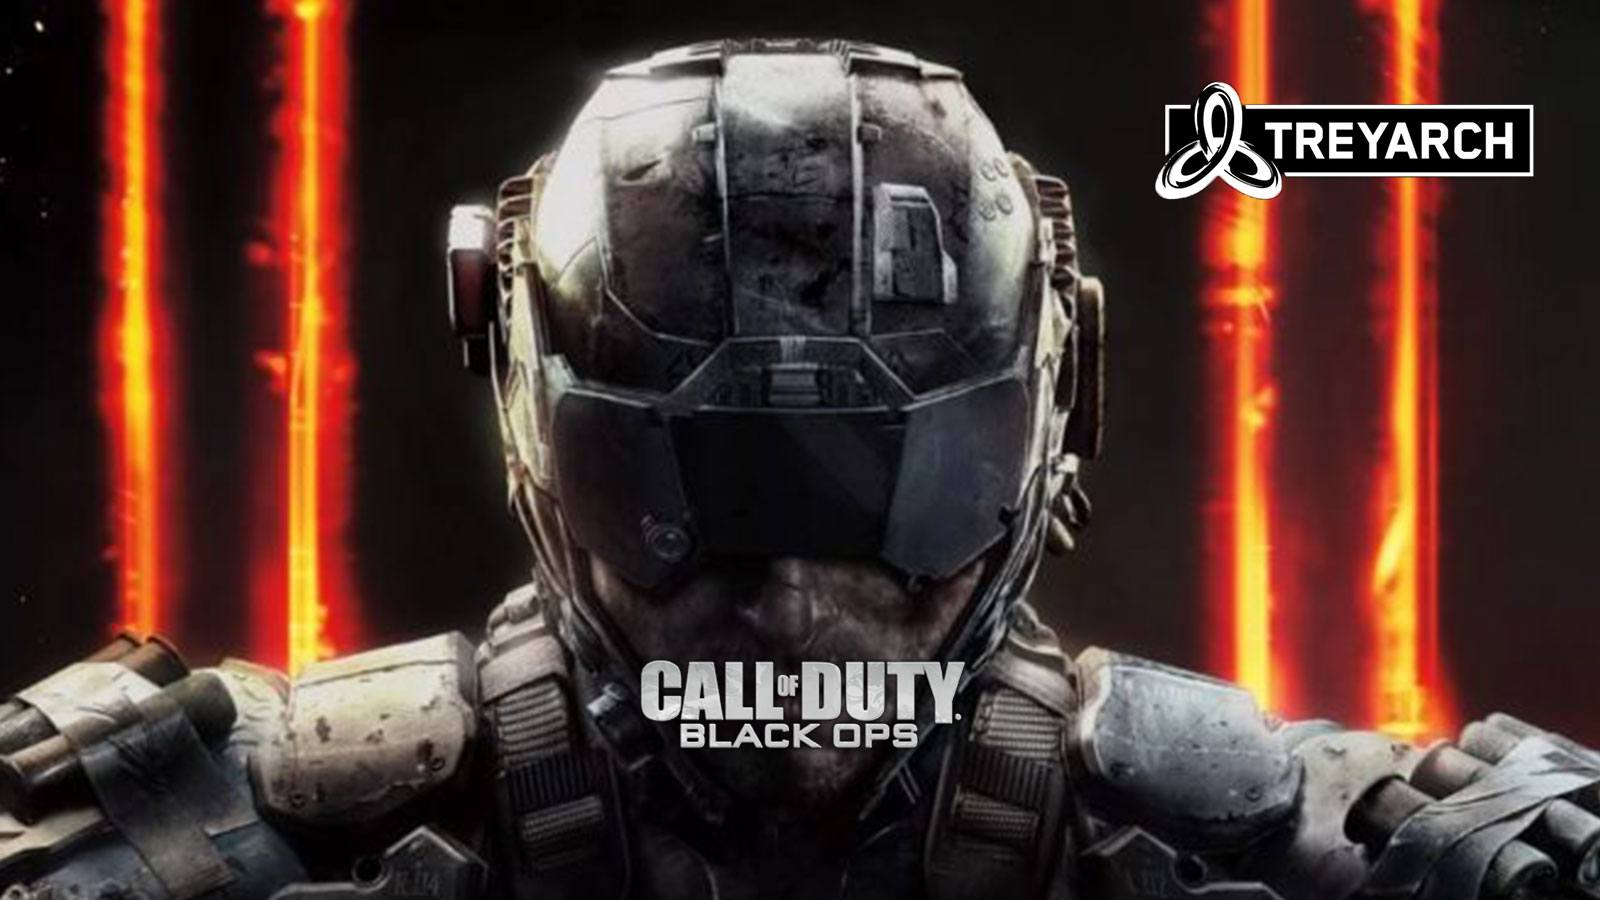 Black Ops Treyarch Activision